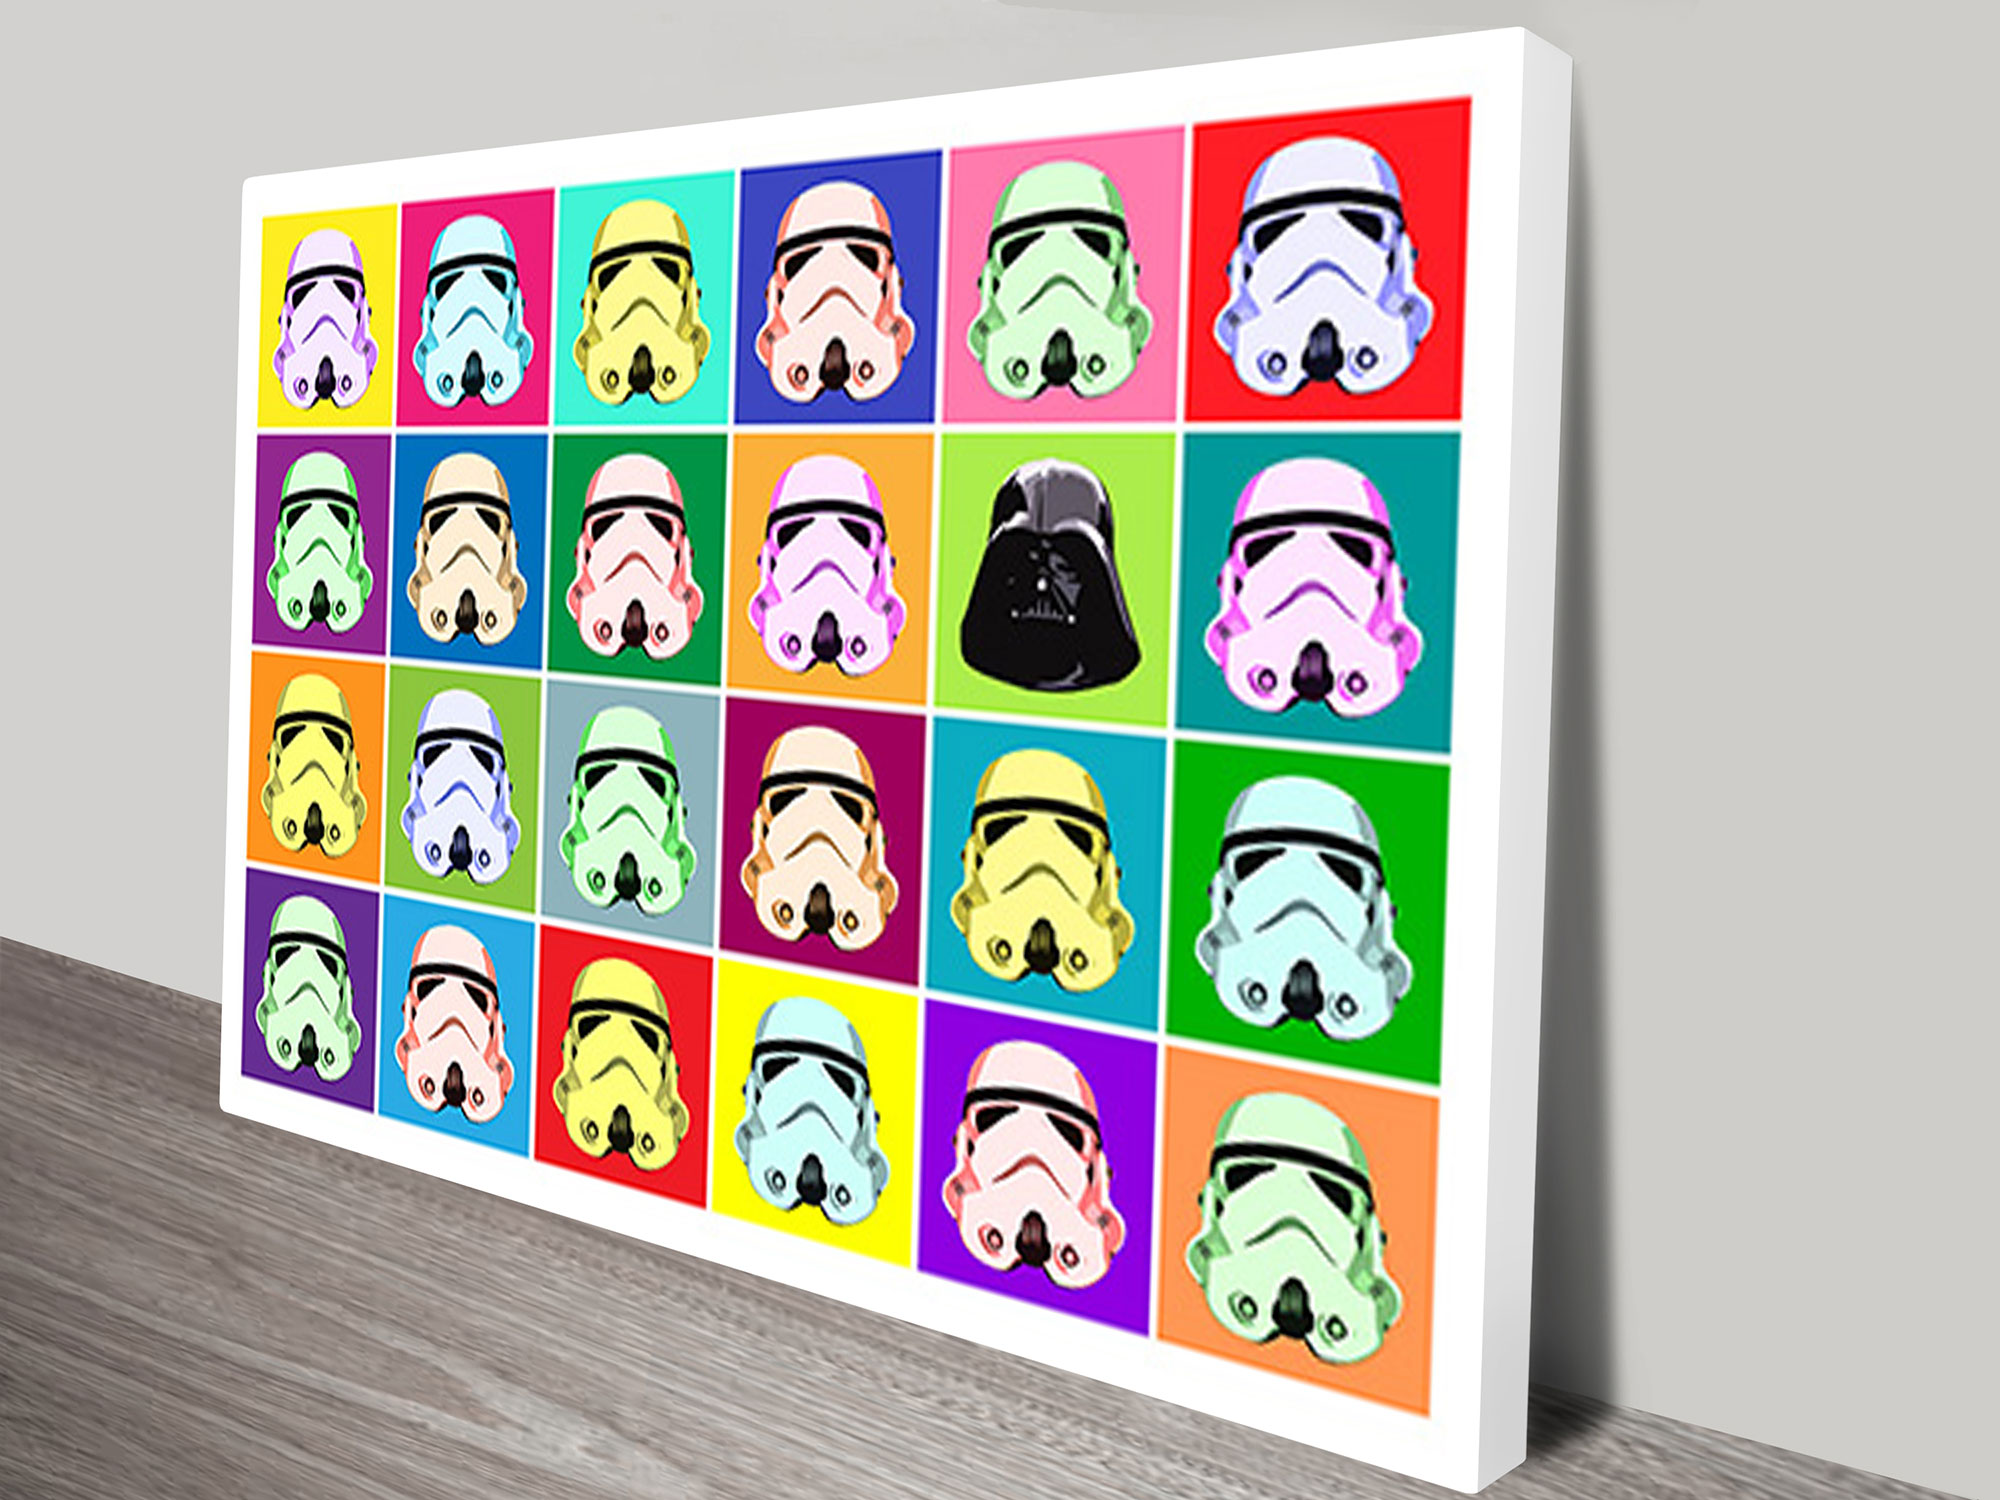 Star Wars Warhol Pop Art Ii Wall Art